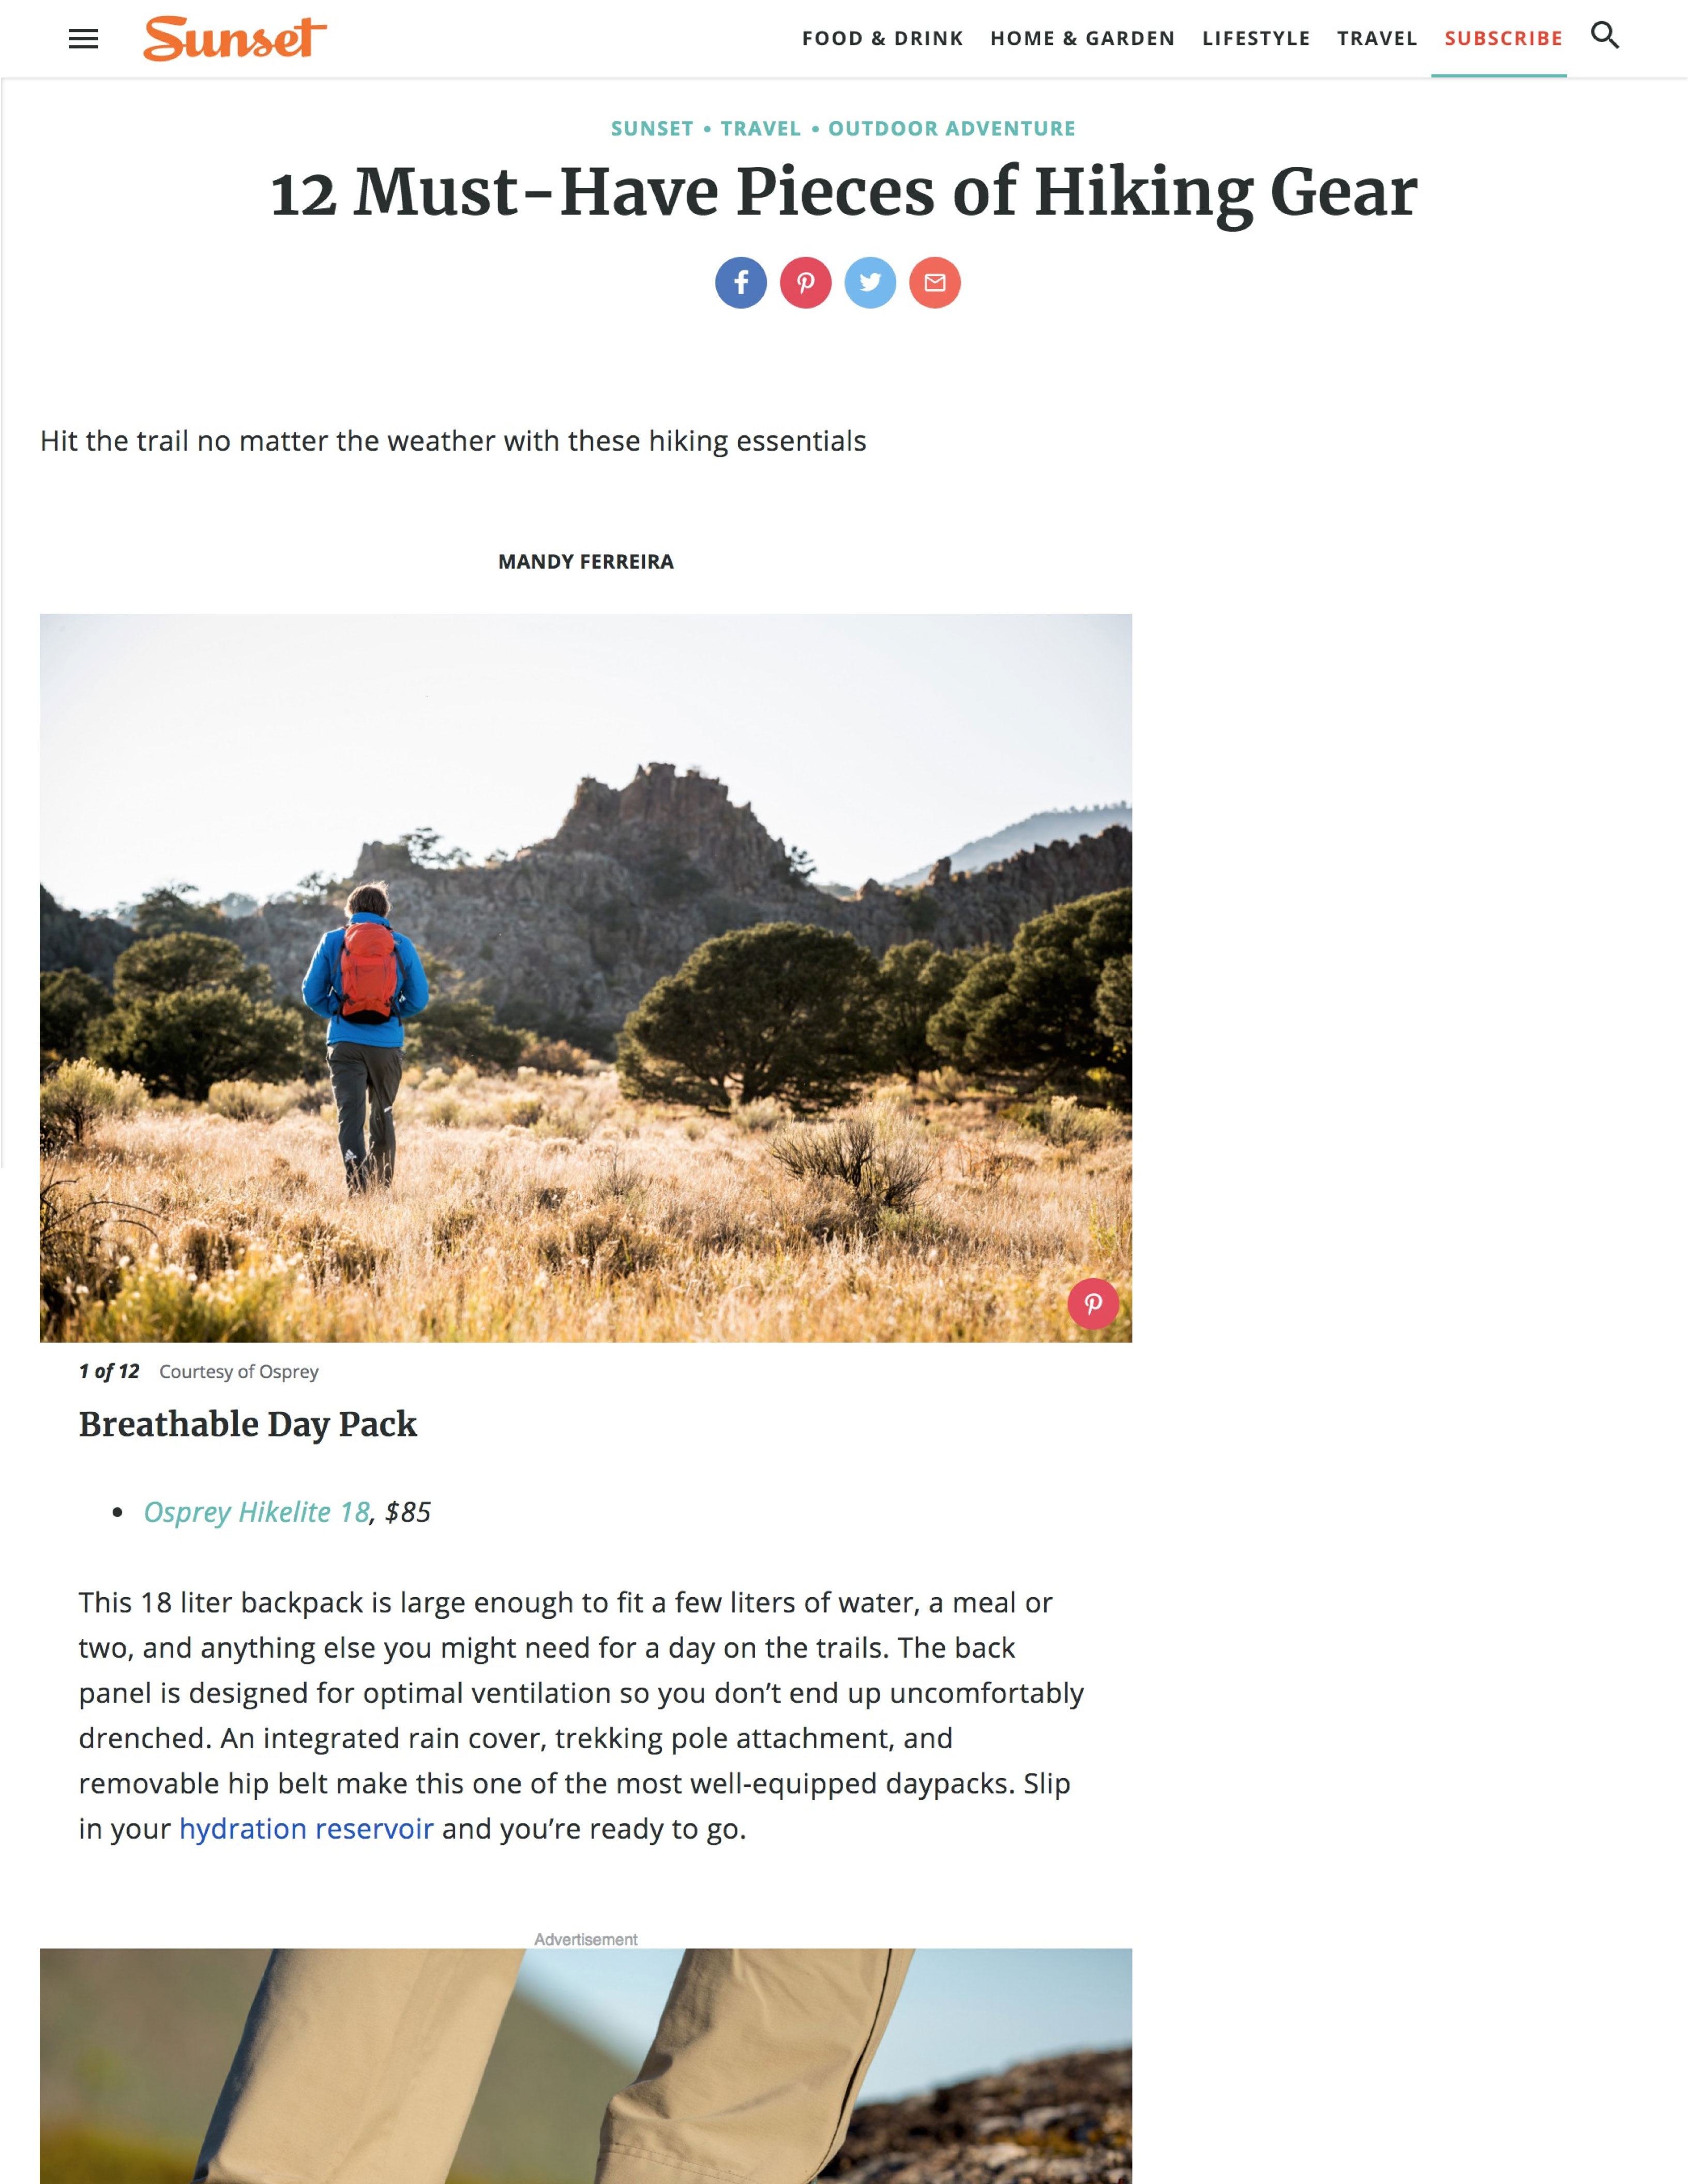 12 Must-Have Pieces of Hiking Gear by Mandy Ferreira Sunset Magazine